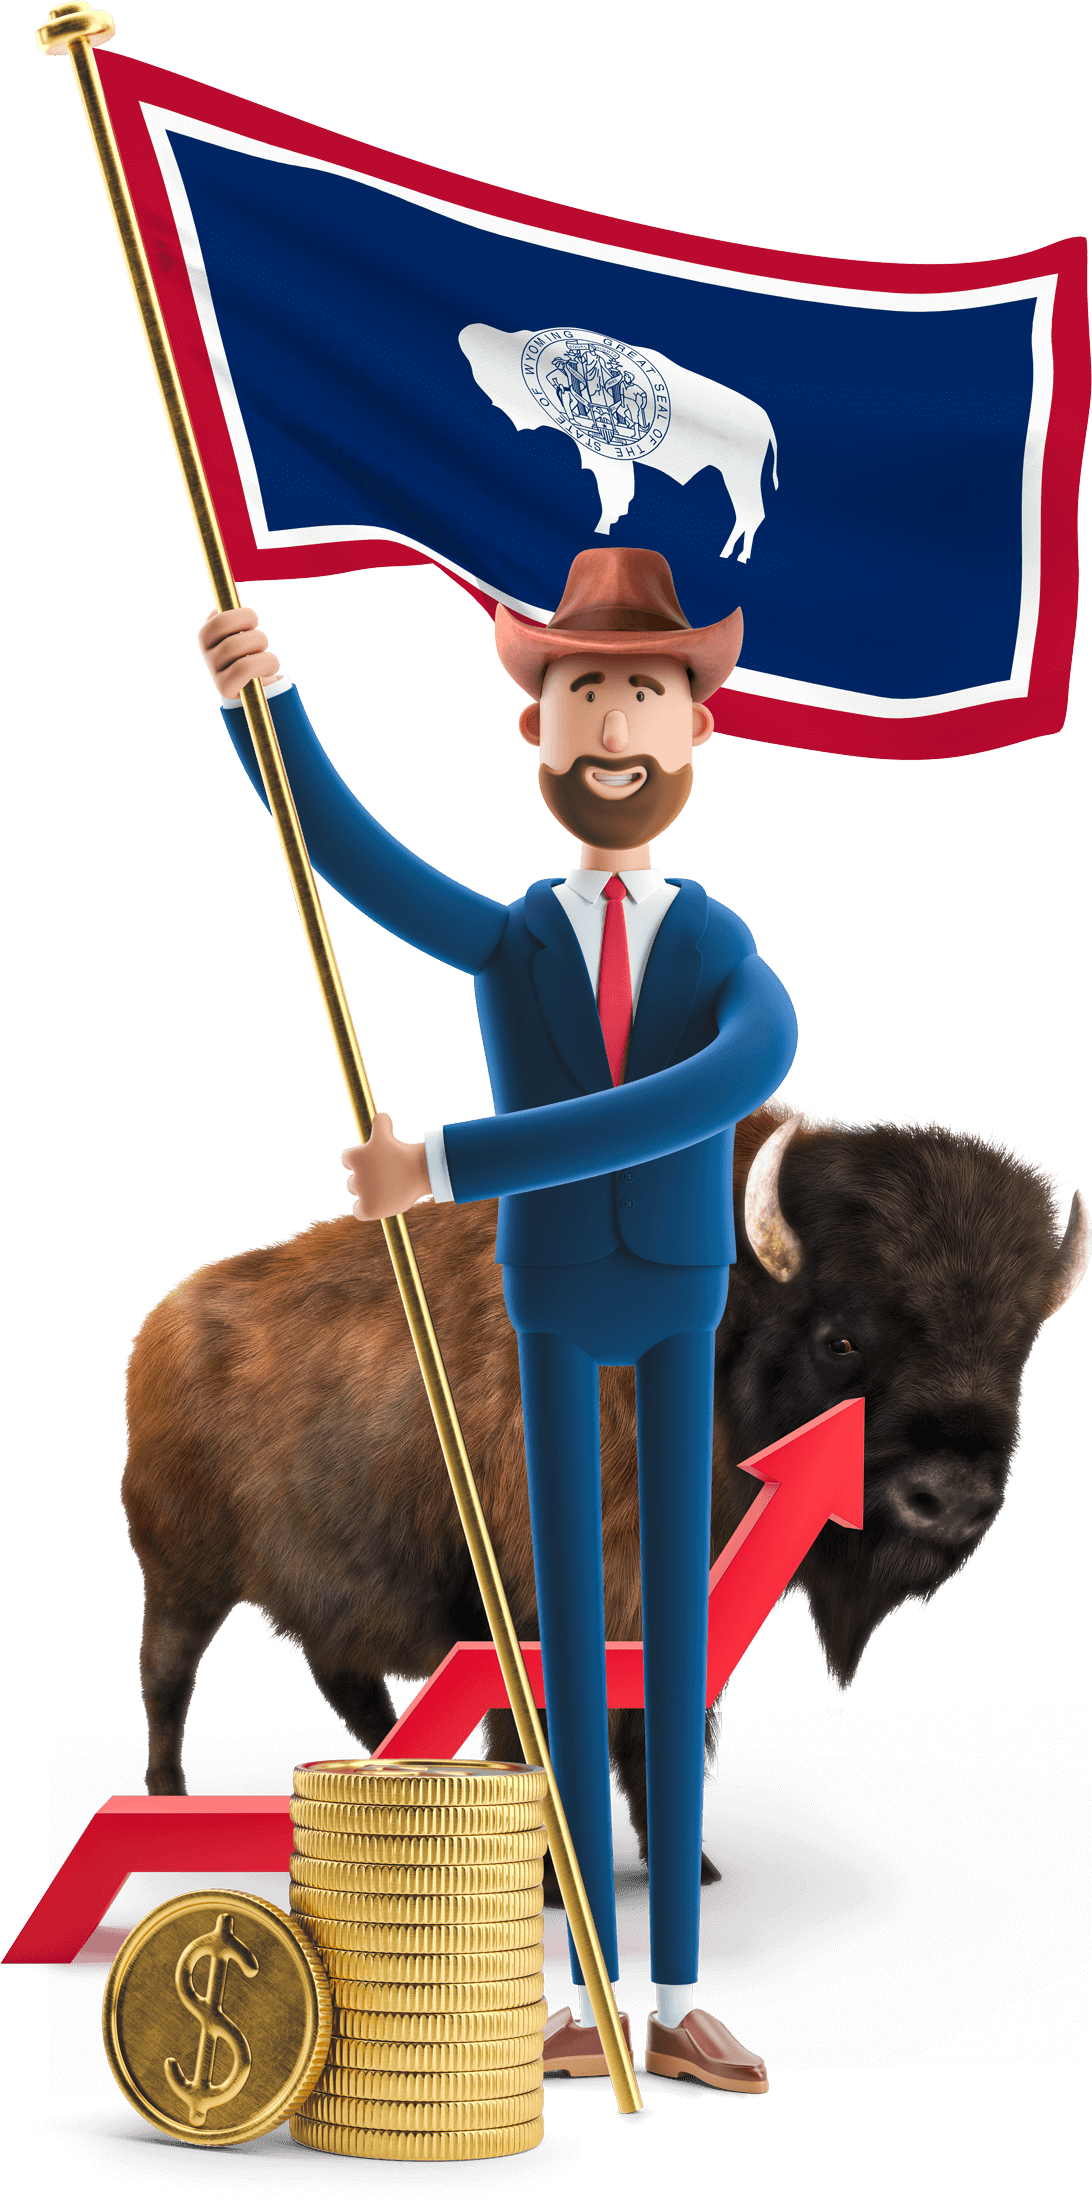 Wyoming flag held by MetCredit USA businessman with a bison in the backgroung